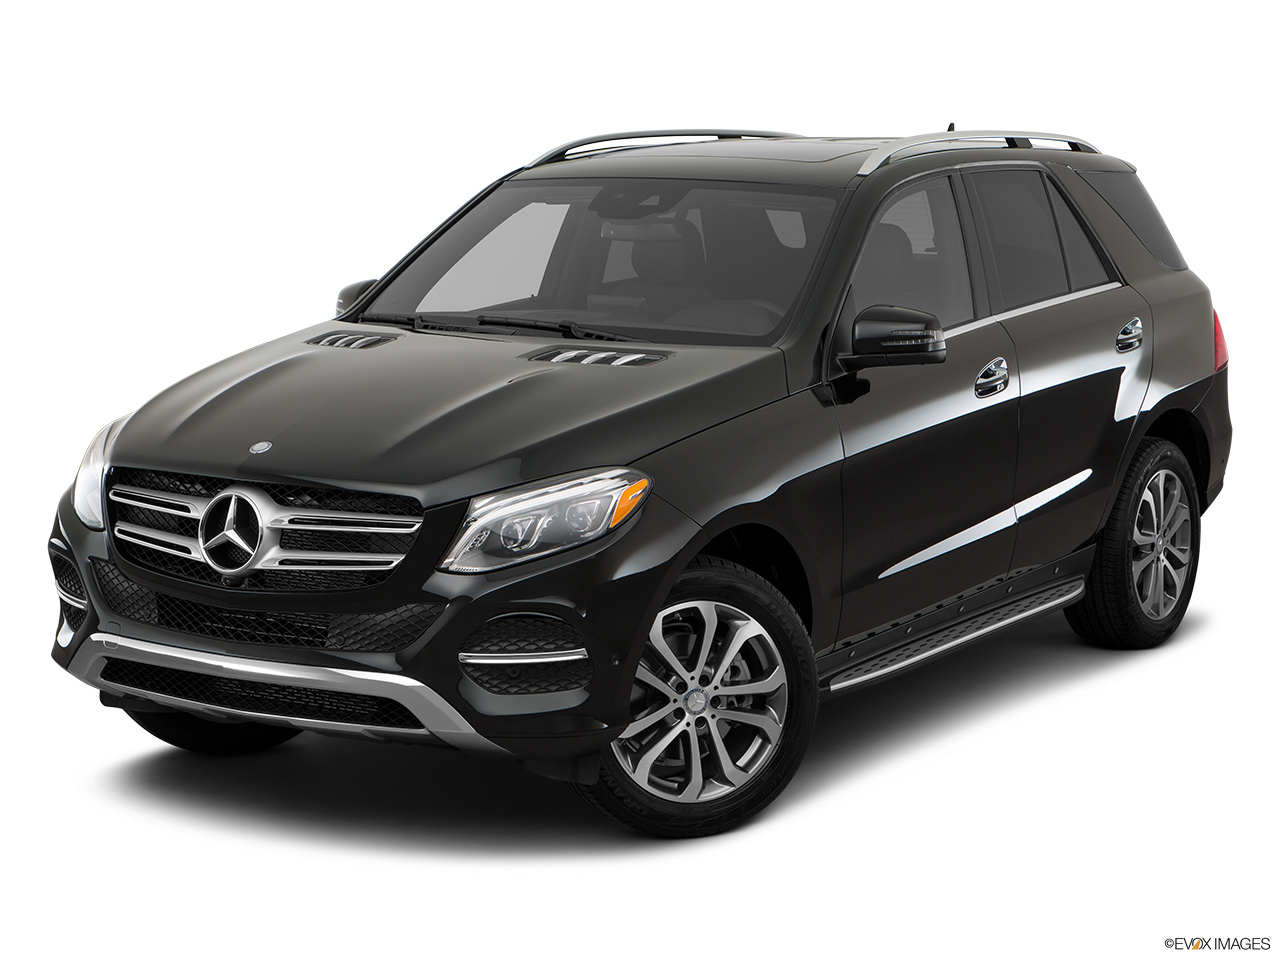 2018 mercedes benz gle class prices in uae gulf specs reviews for dubai abu dhabi and. Black Bedroom Furniture Sets. Home Design Ideas